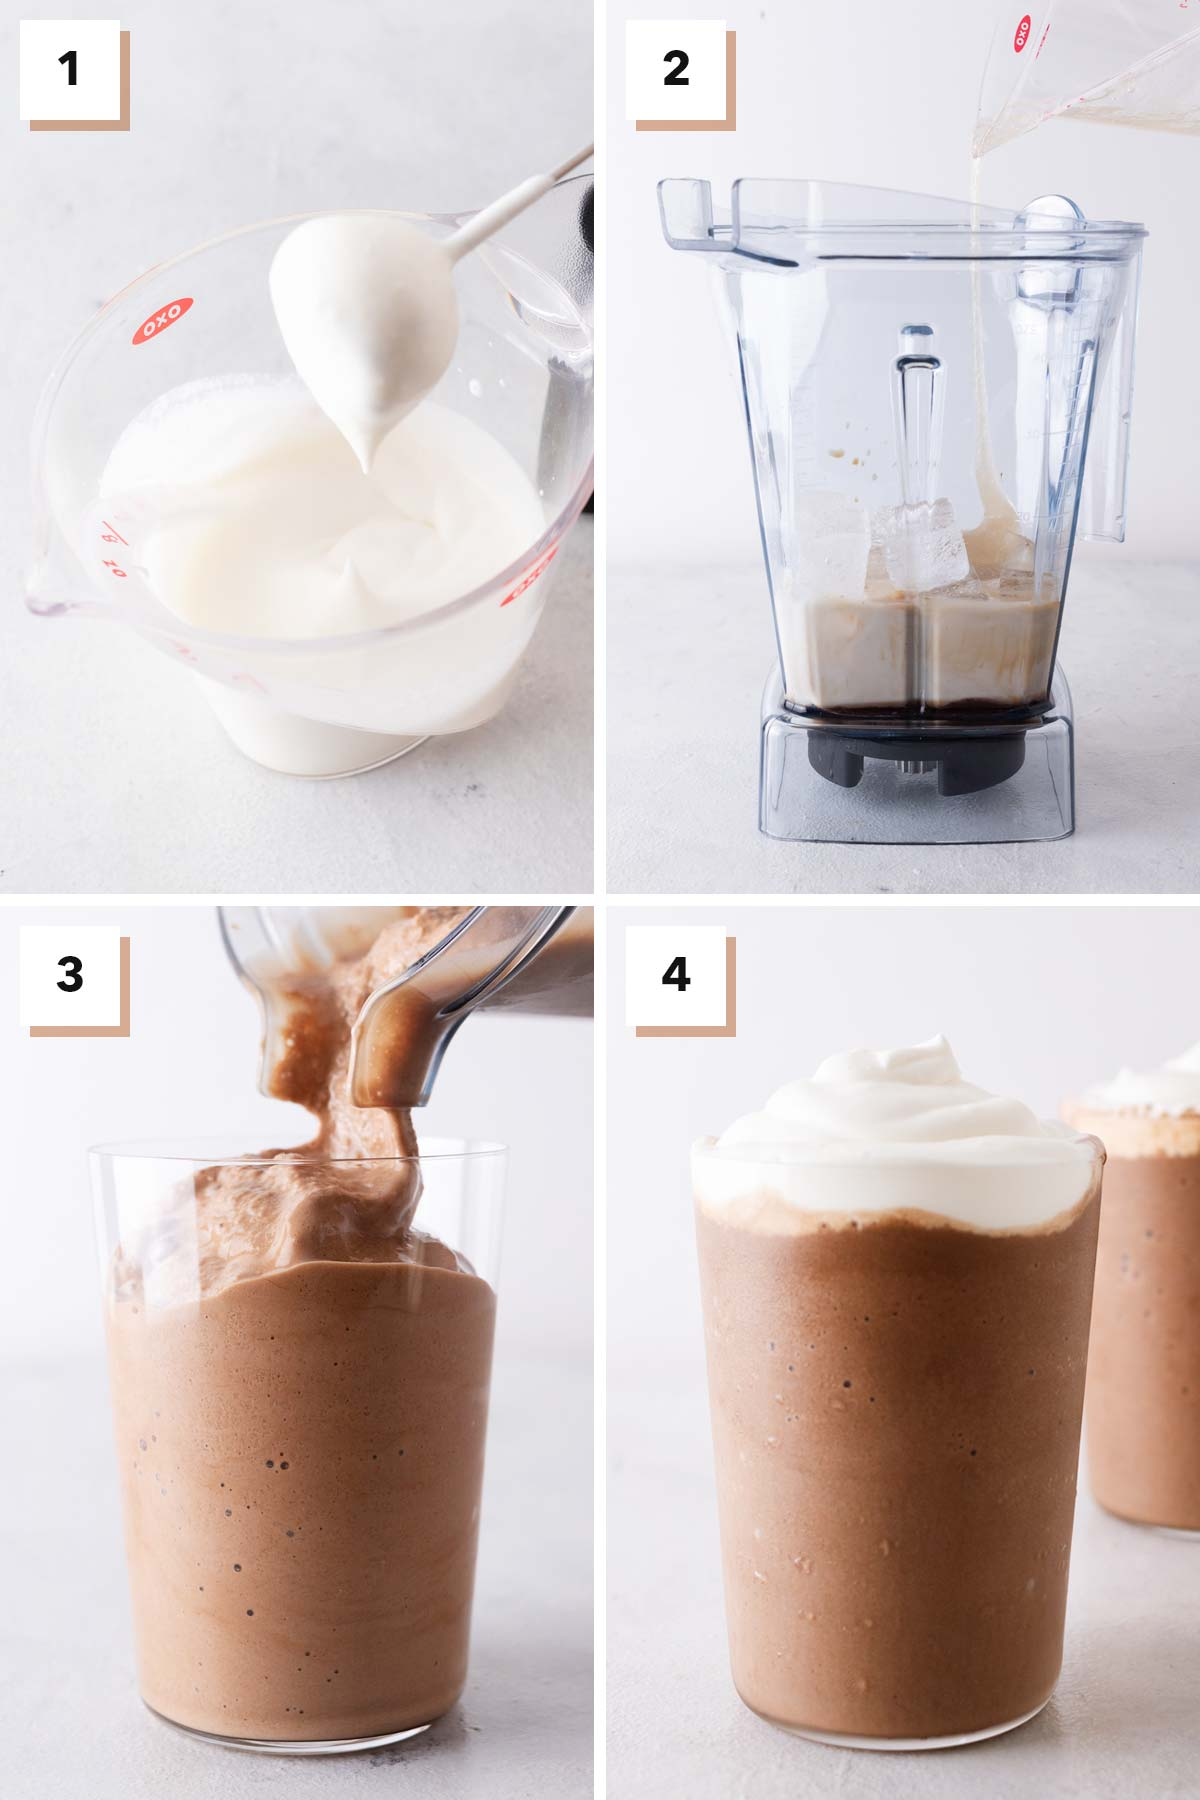 Four photo collage with steps to make Mocha Frappuccino.